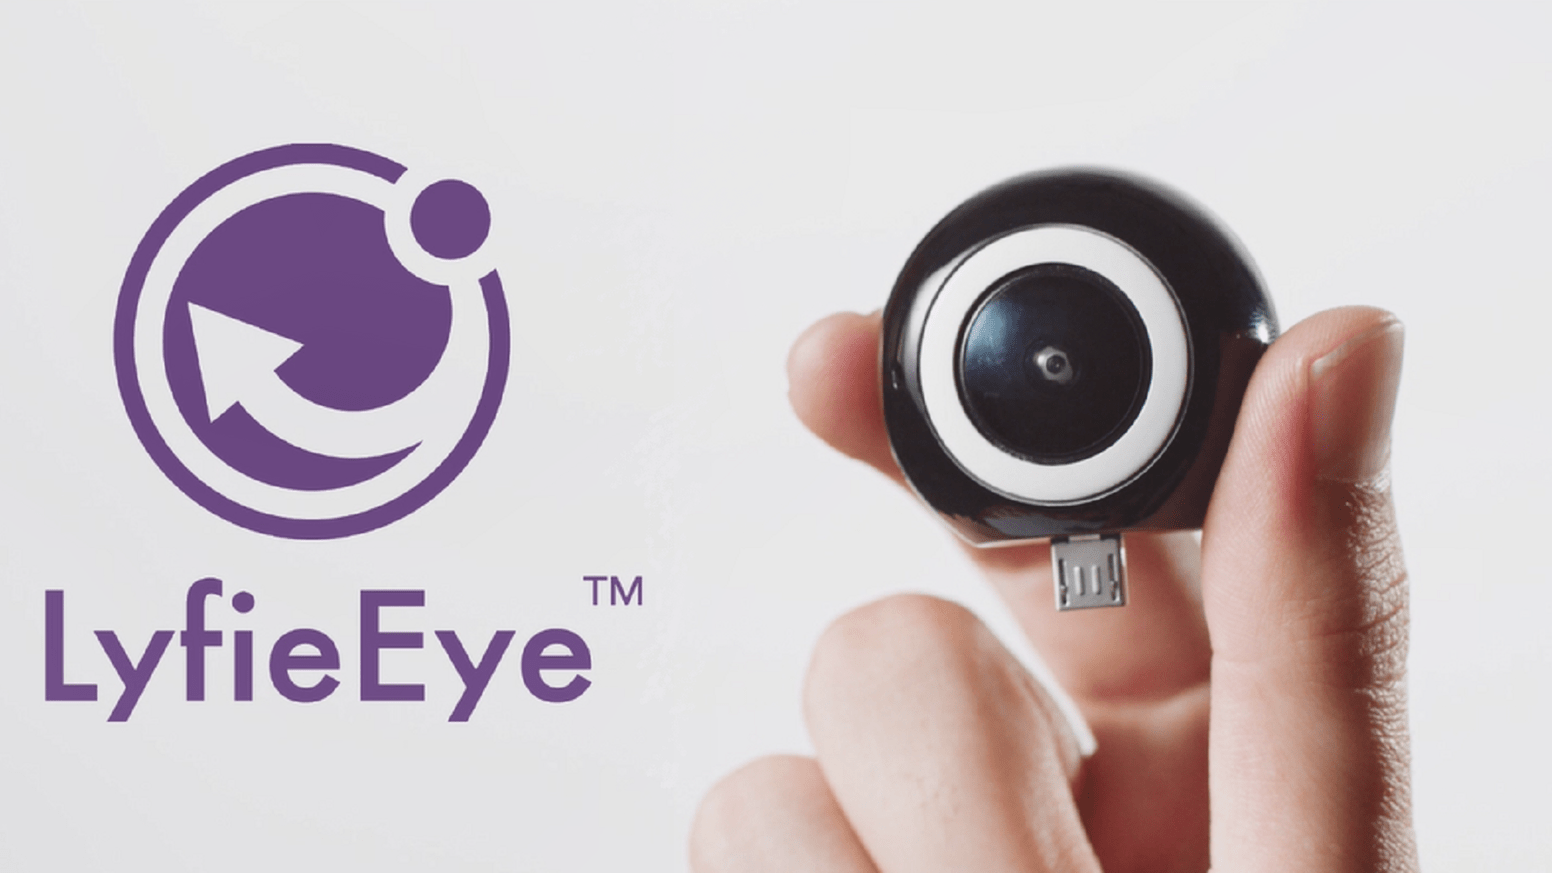 World's smallest VR camera today: Is Lyfie truly easy to use?